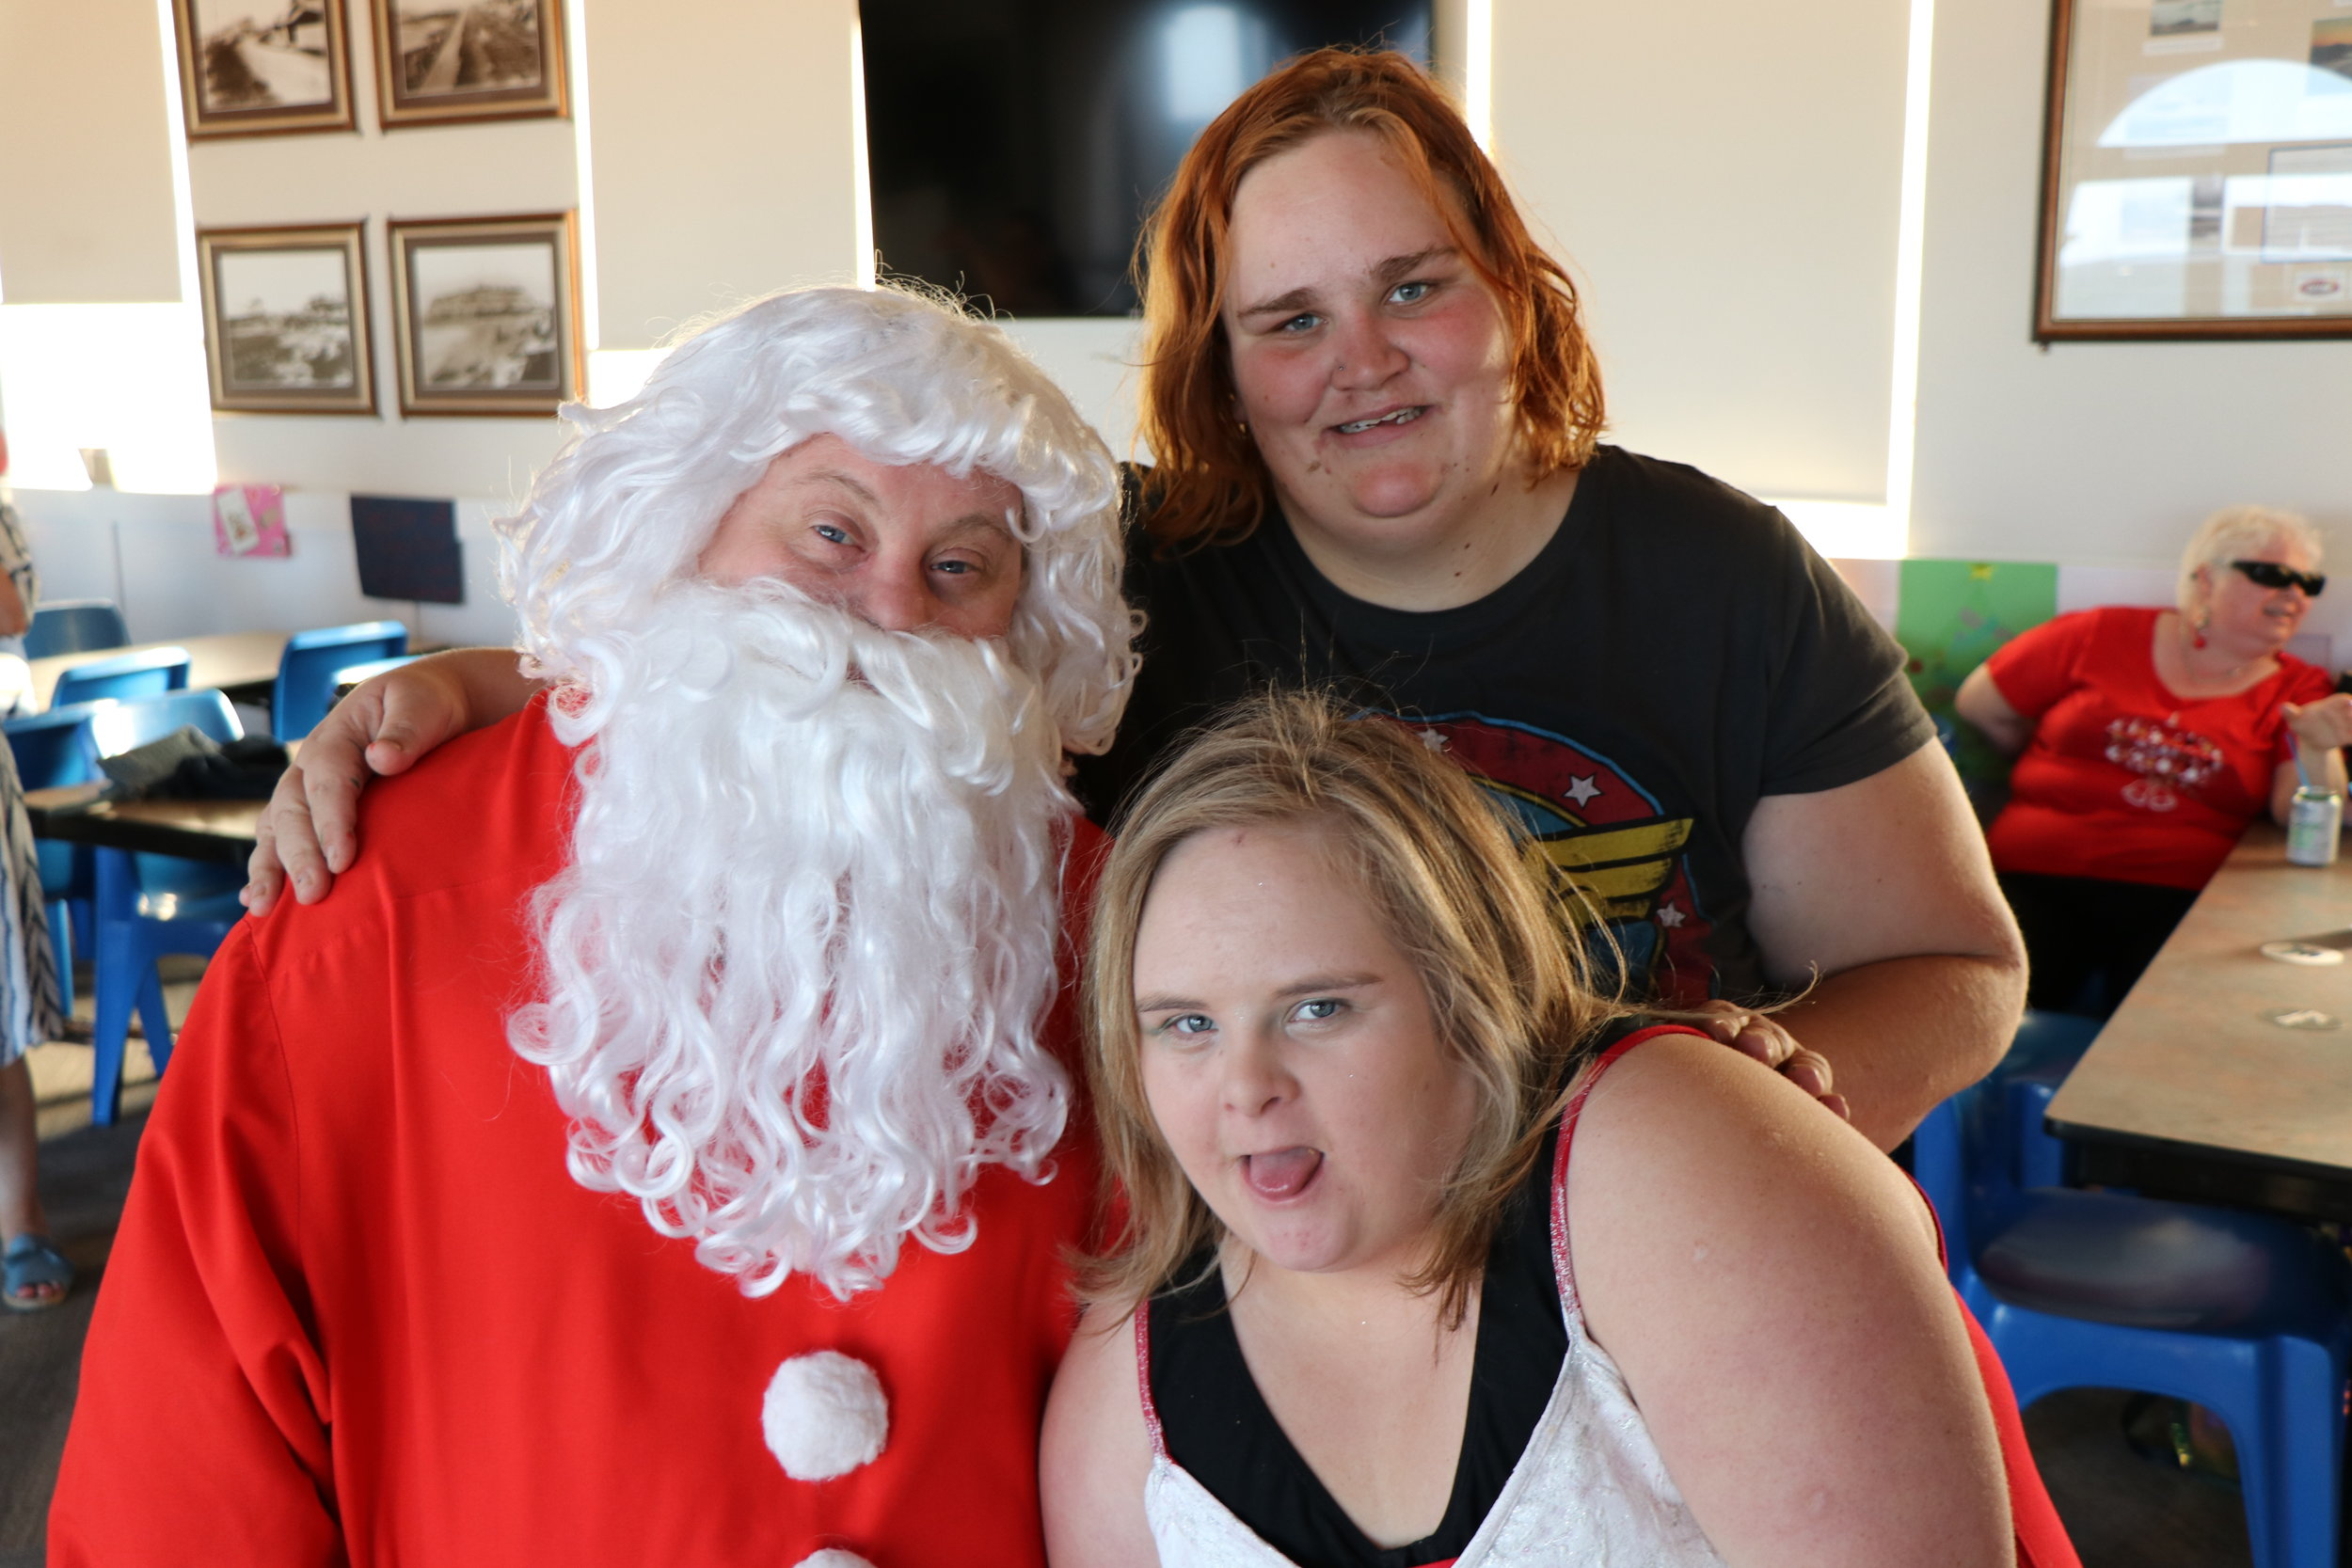 Photo of Santa Claus with two women.